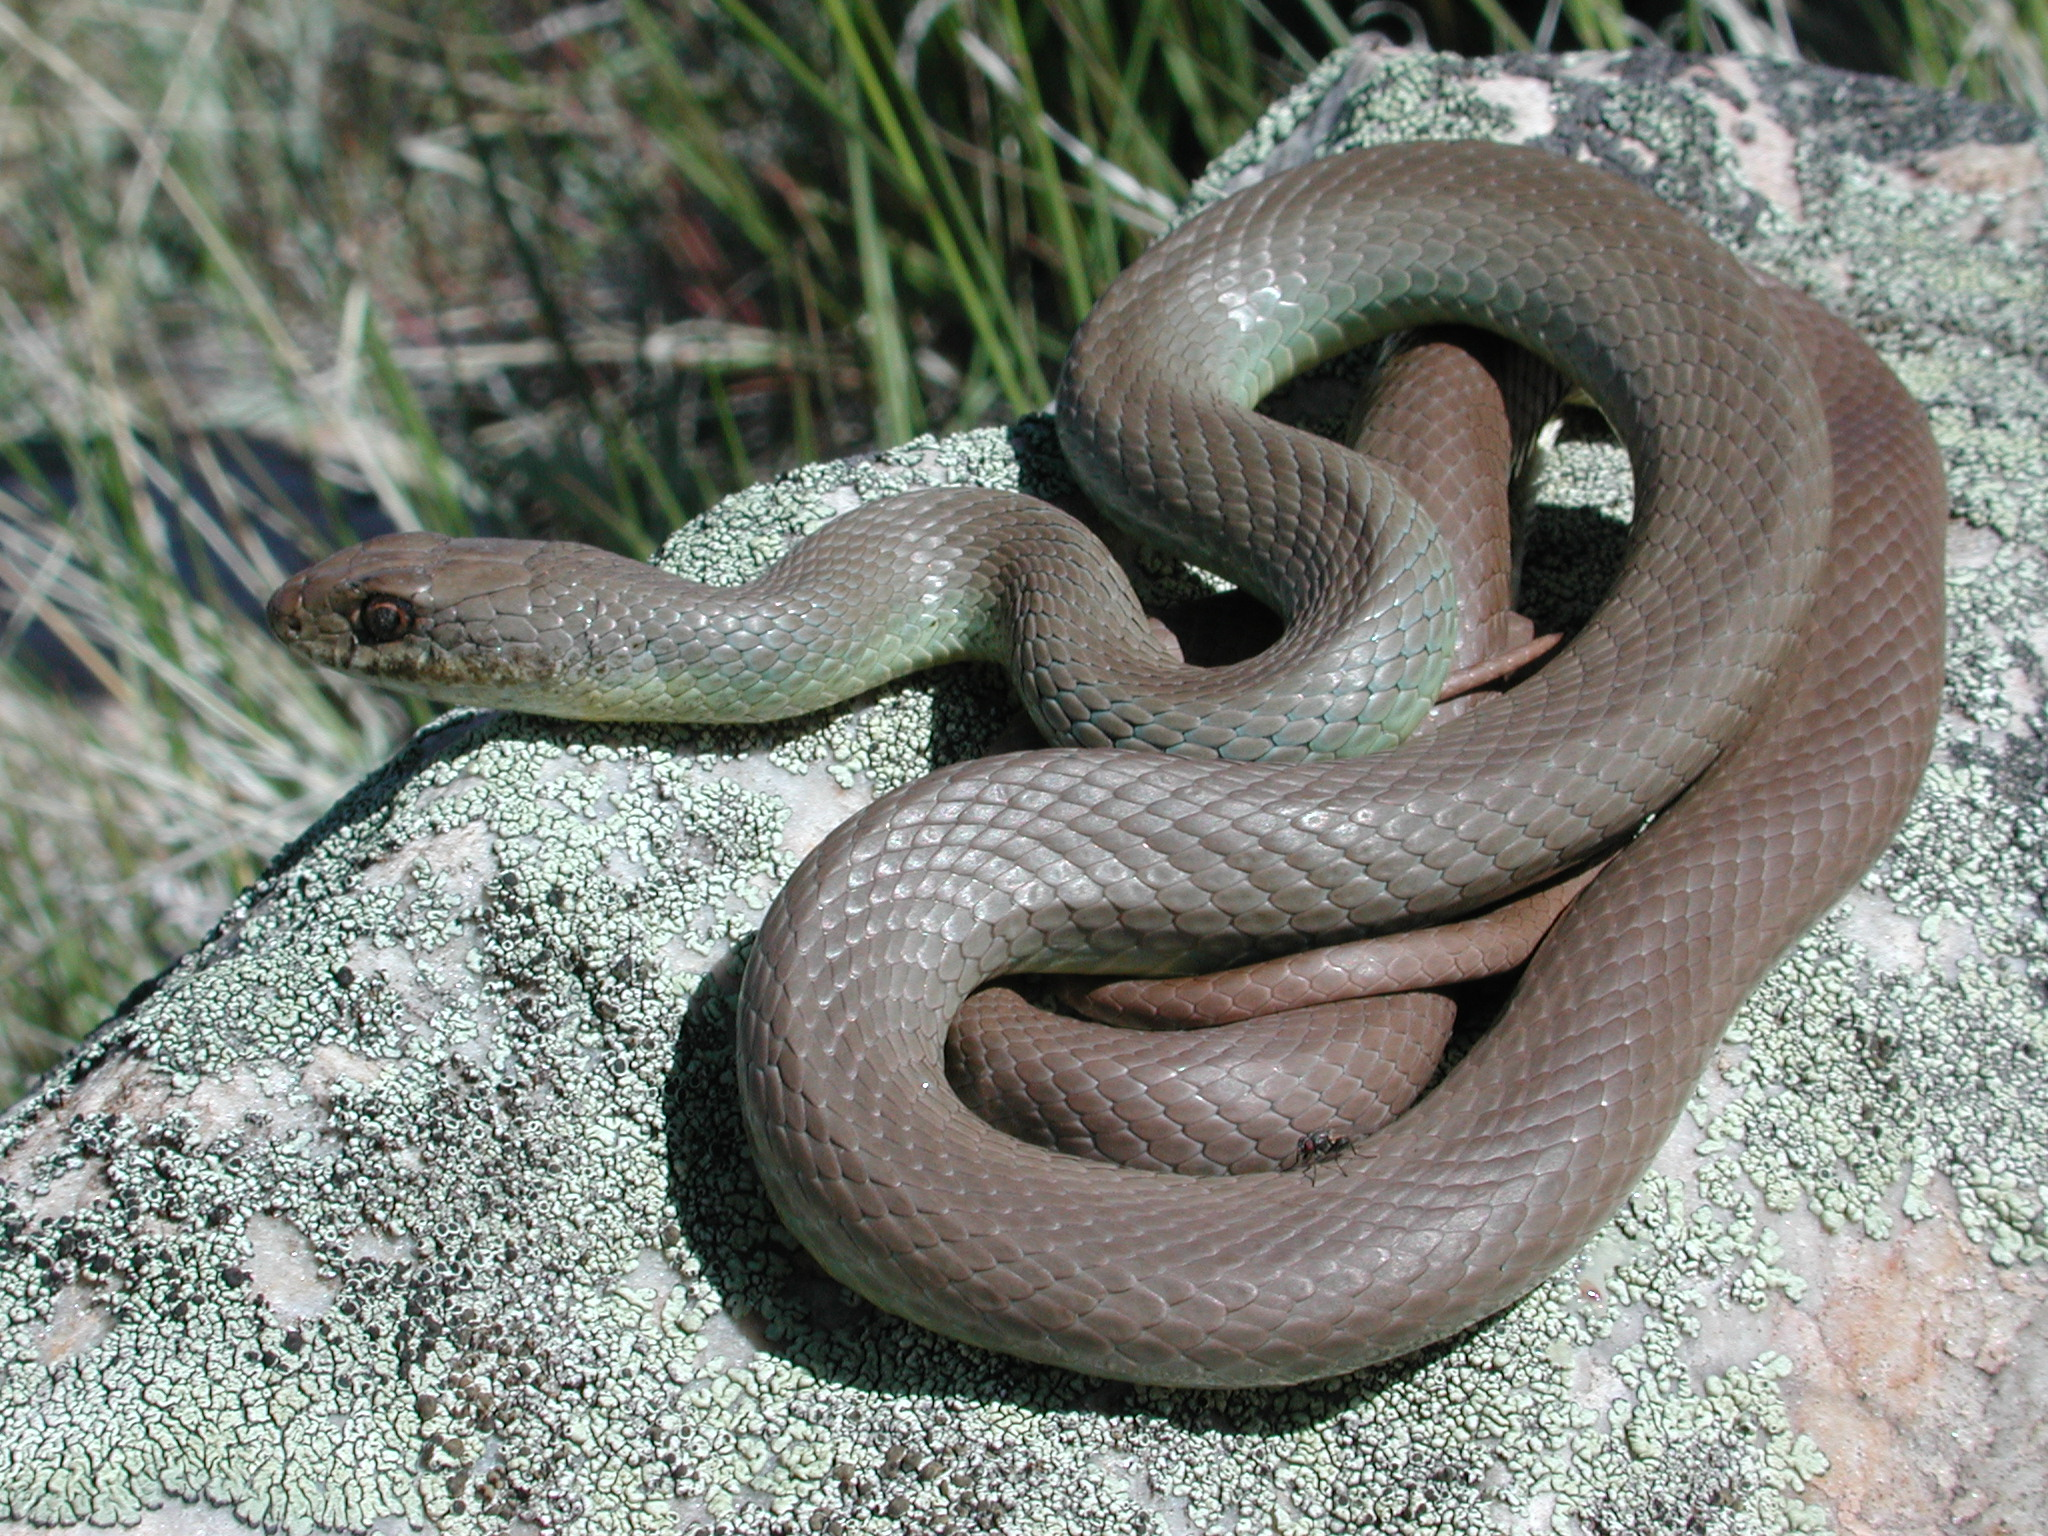 Racer Coluber Constrictor